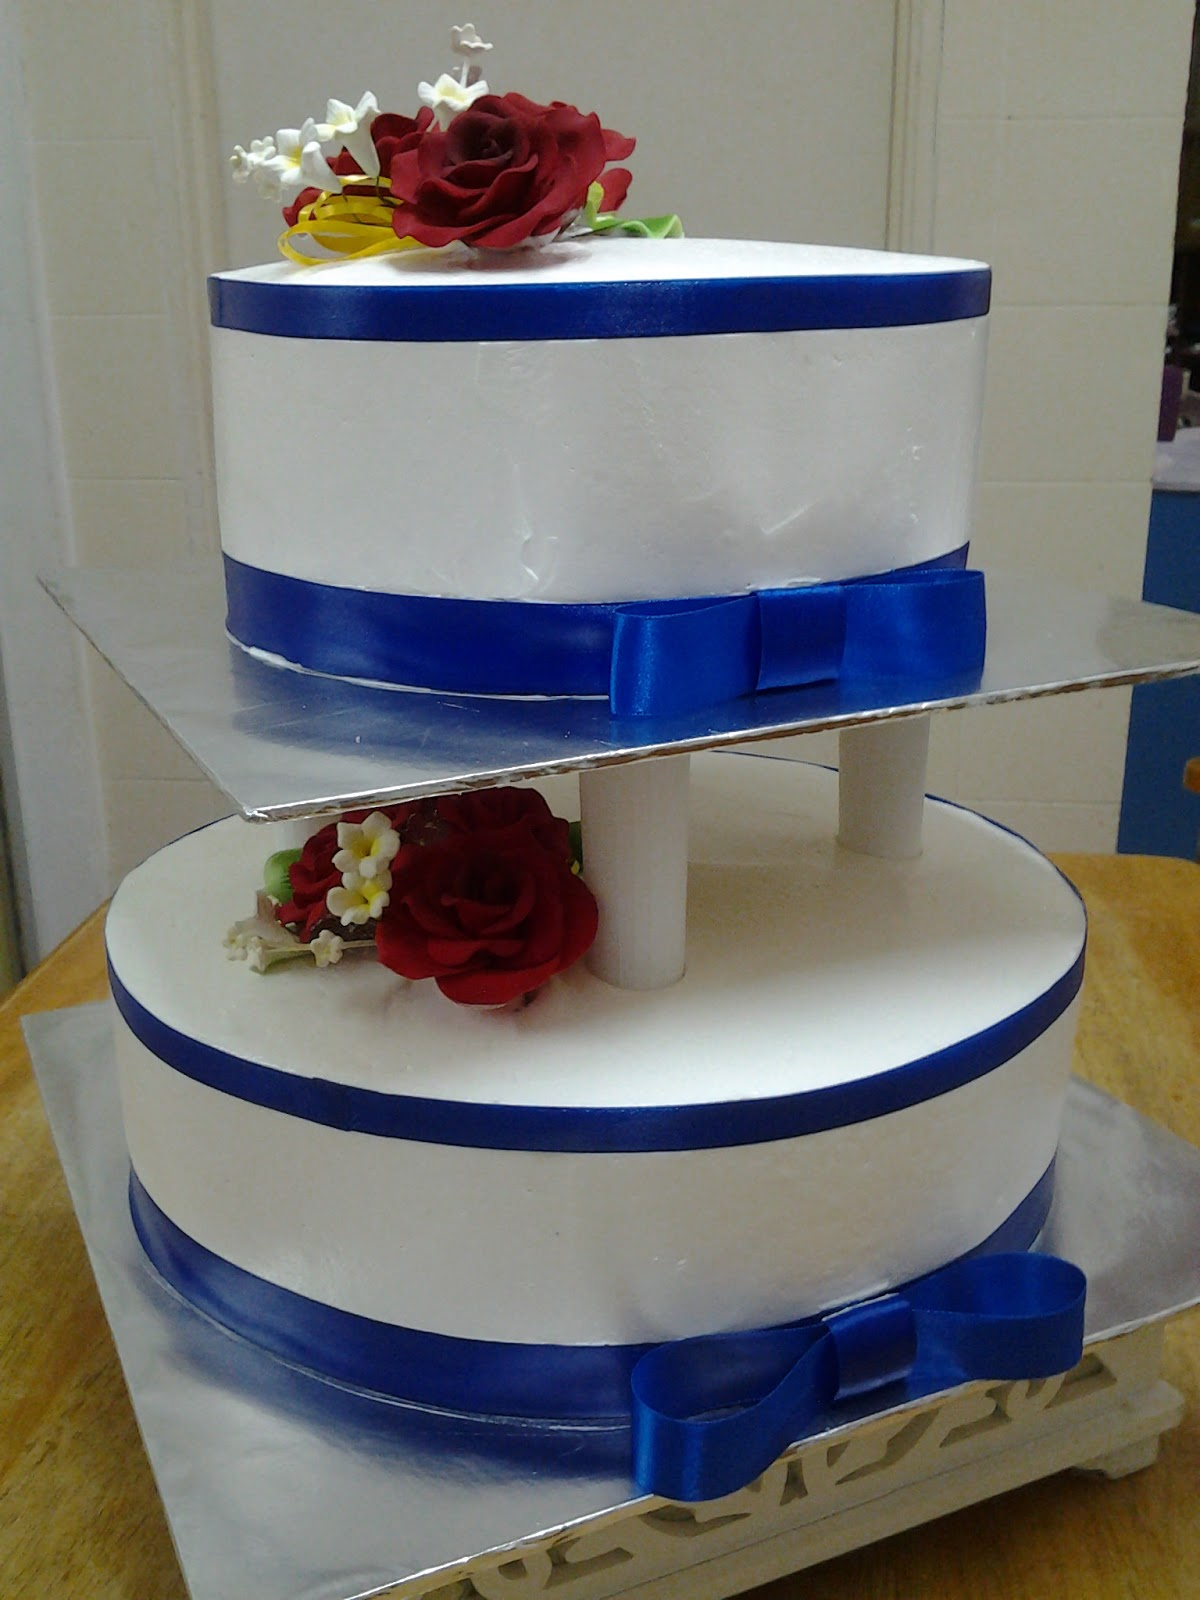 CT Hasanah Cake House Blue and White 2 Tier Wedding Cake